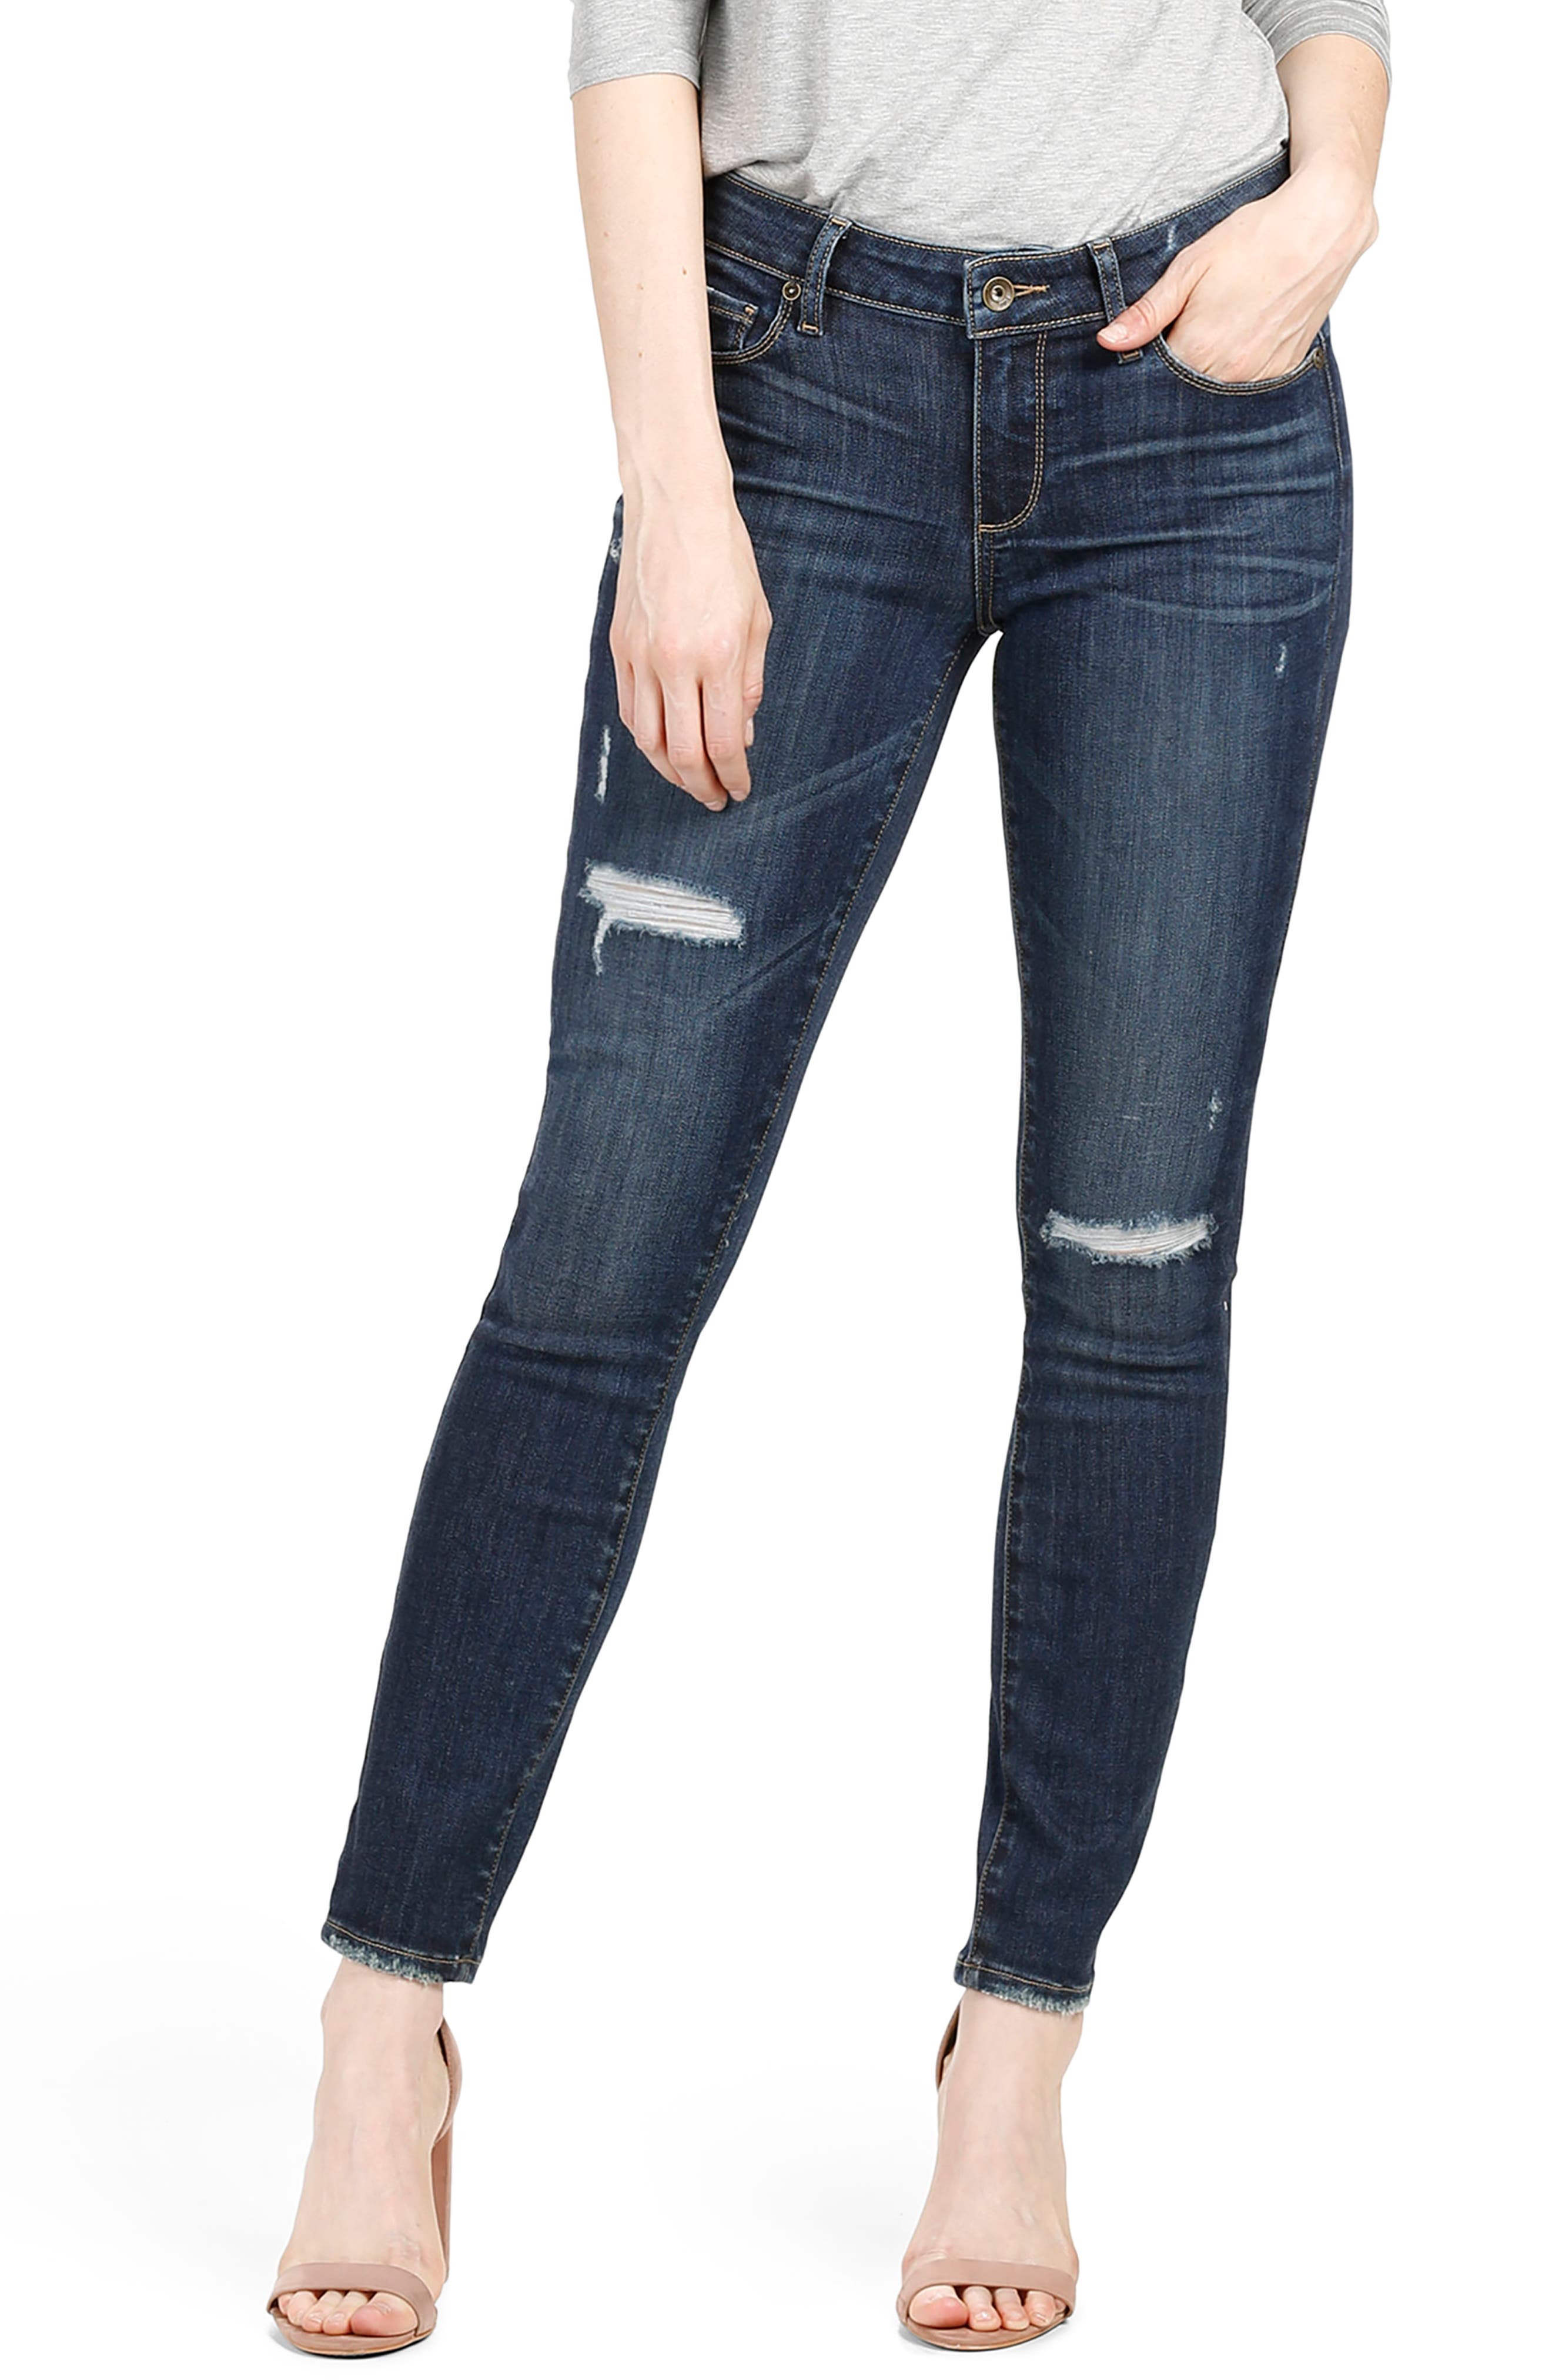 Main Image - PAIGE Transcend Vintage - Hoxton Ankle Skinny Jeans (Cleary Destructed)